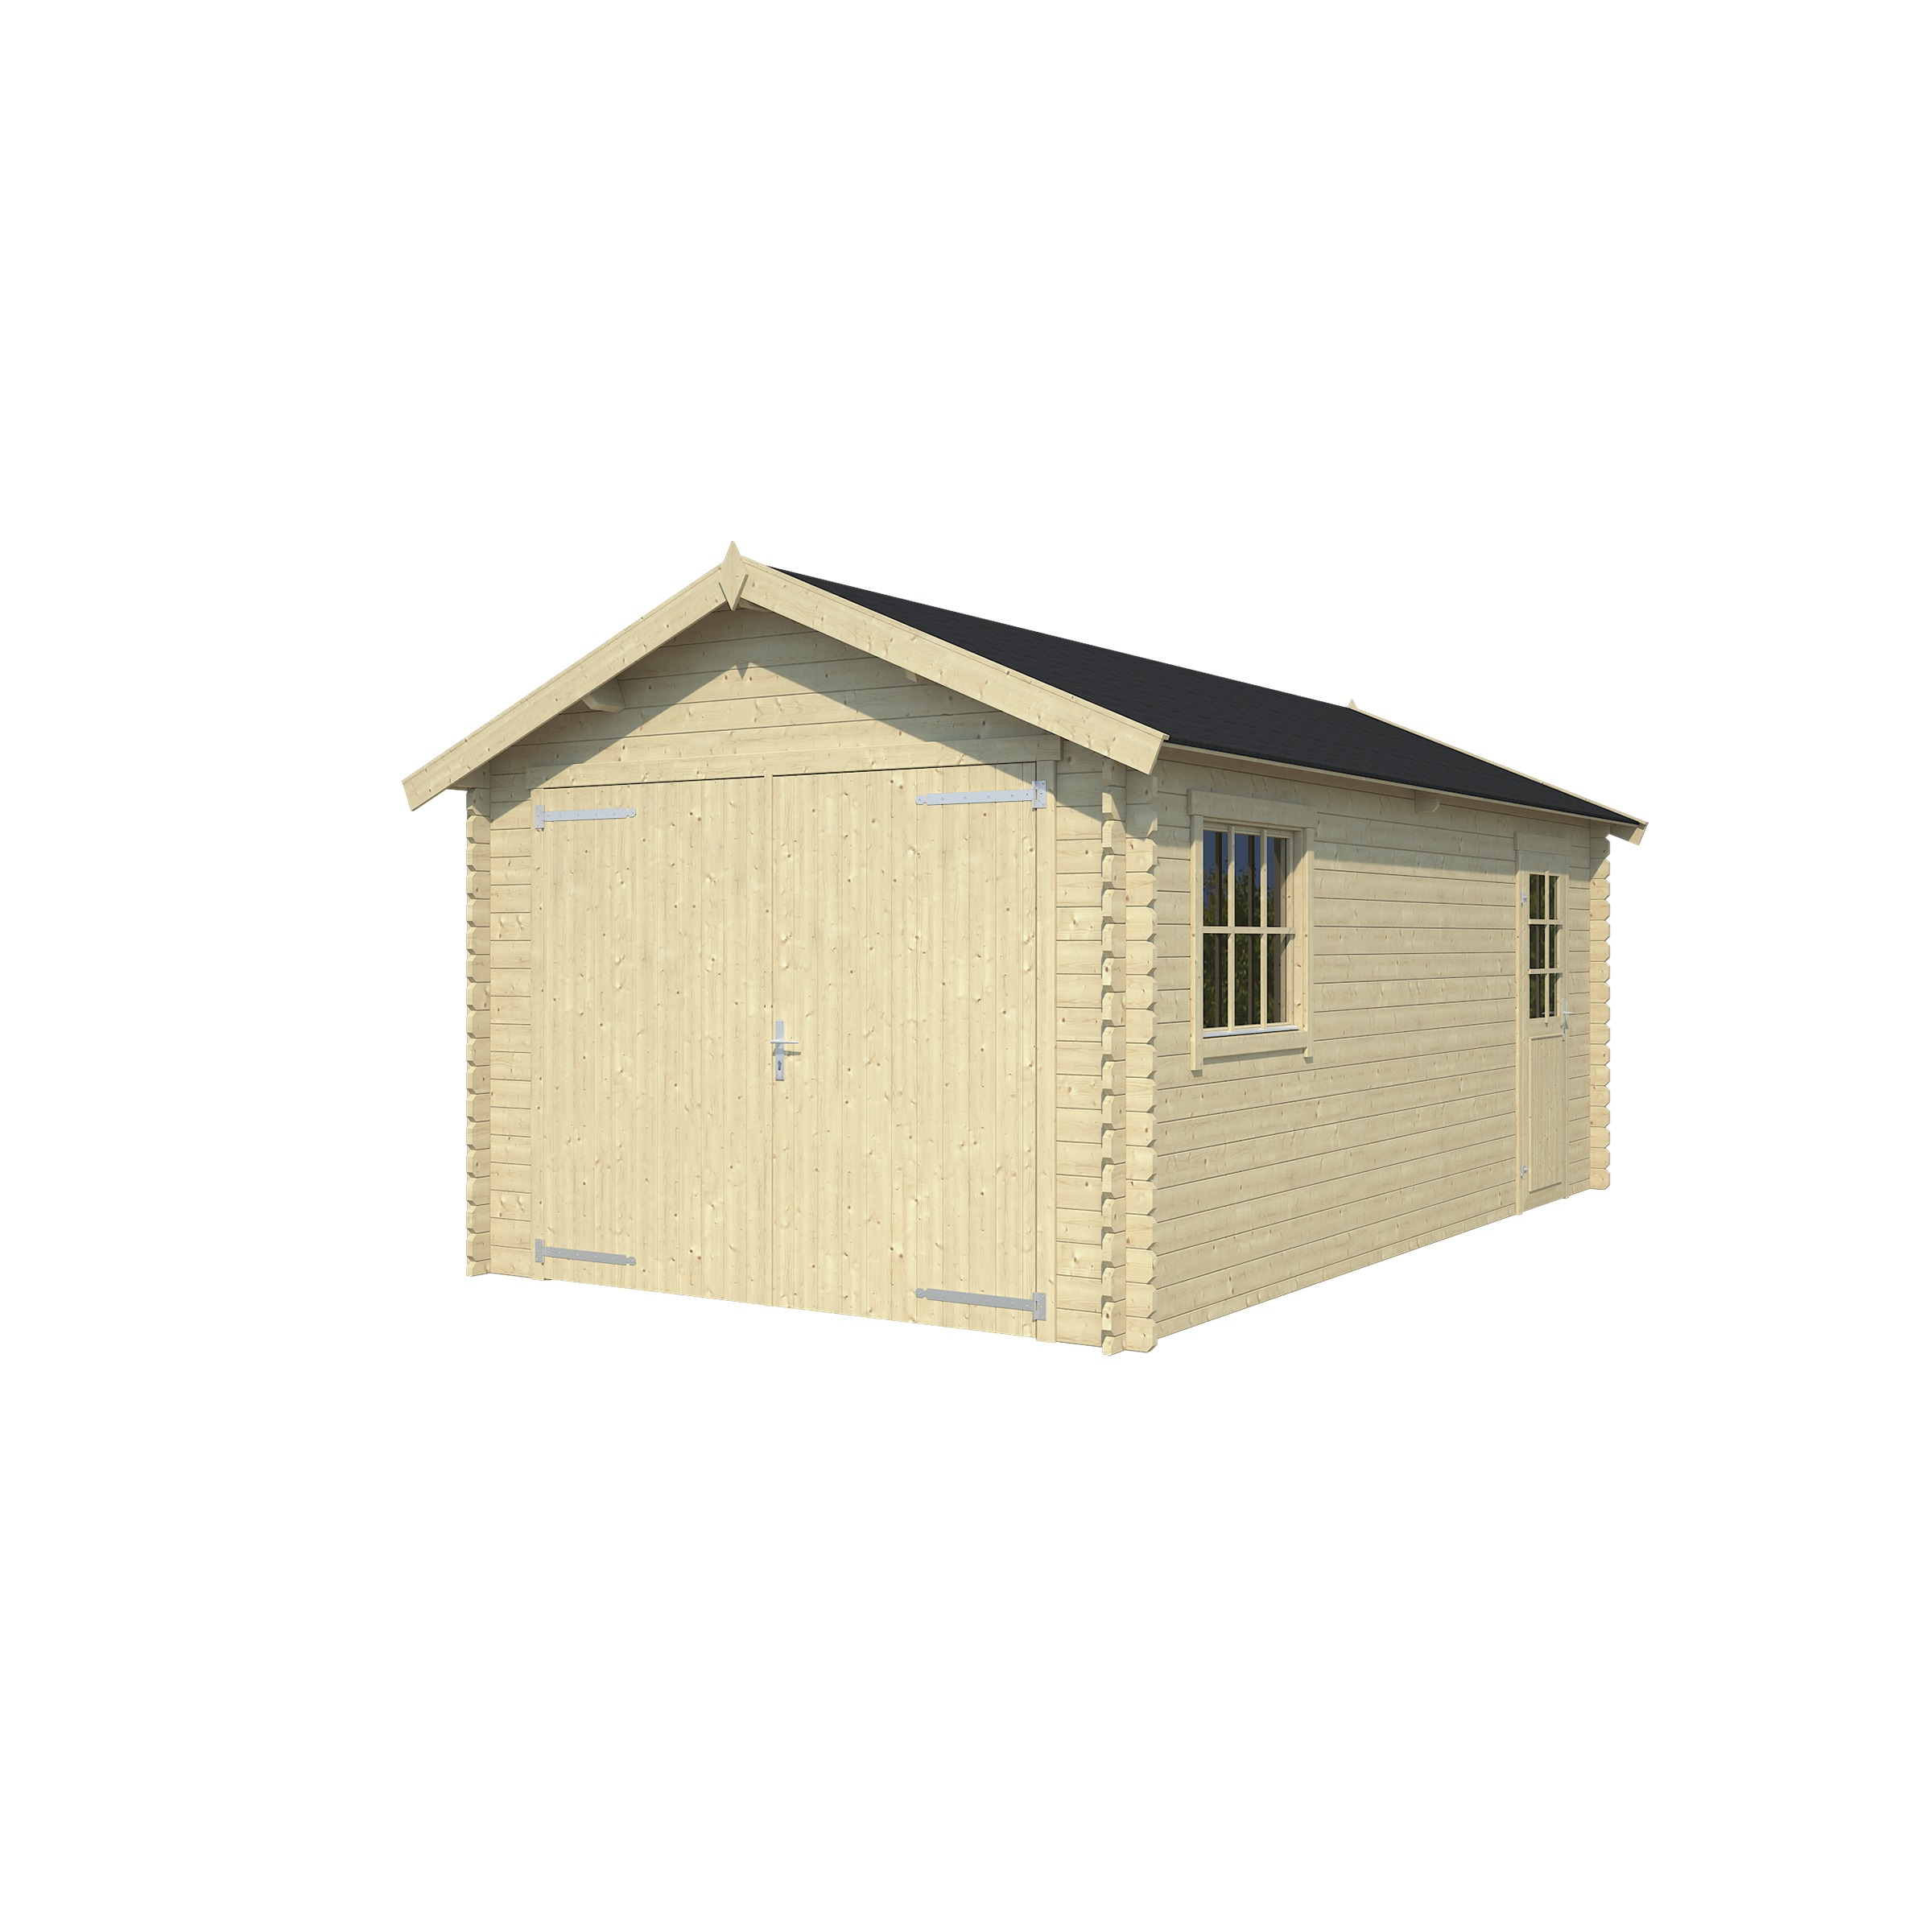 OLP Outdoor Life Products Tuinhuis Dillon 540